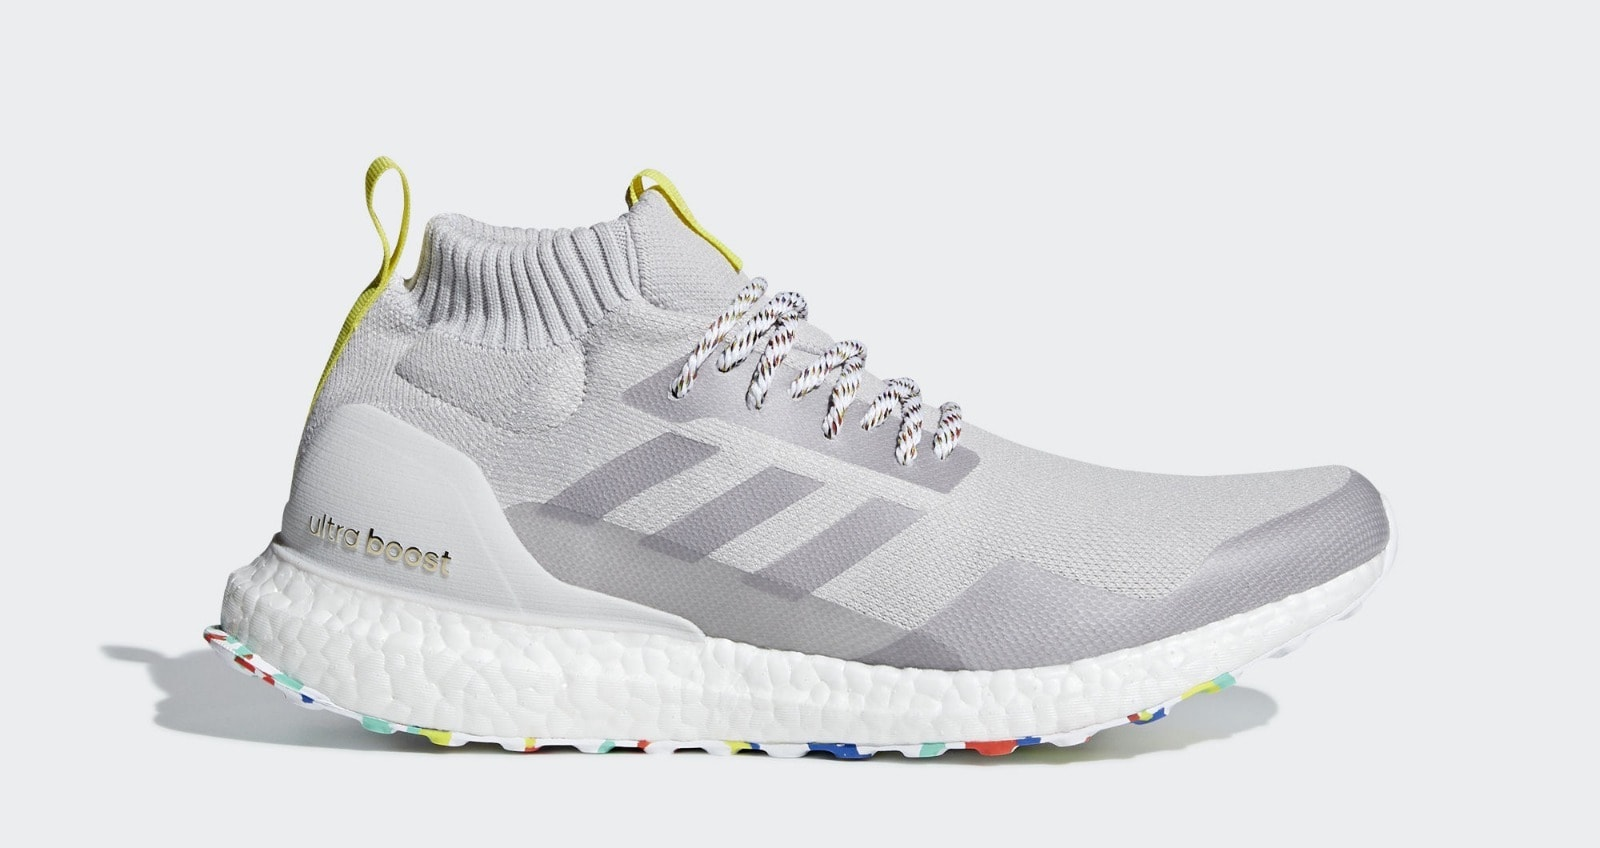 6e2895261928f The adidas Ultra Boost has hit retail shelves in just about every shape